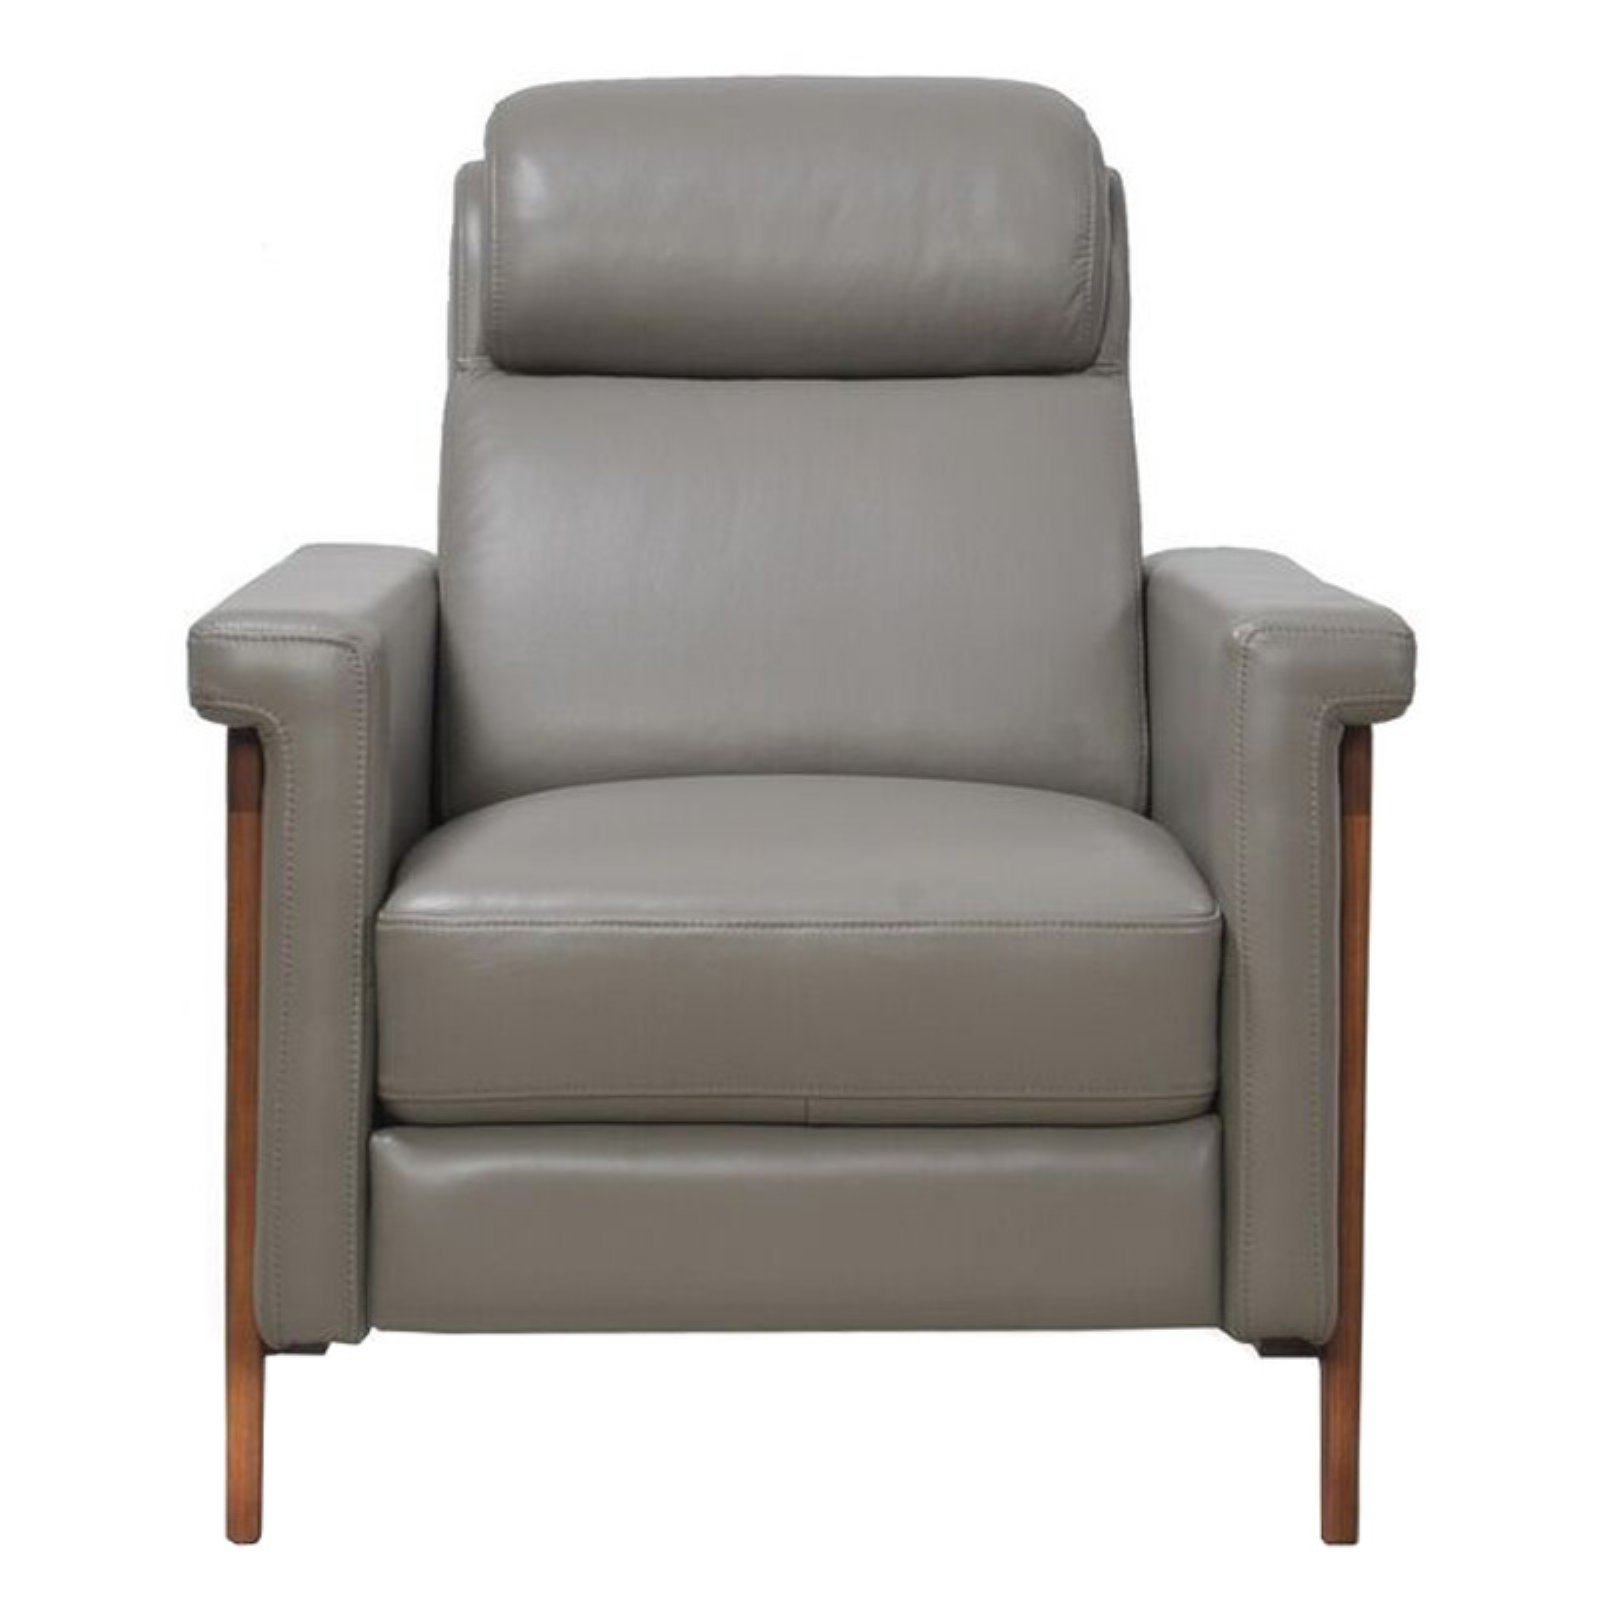 Moroni Harvard Reclining Chair